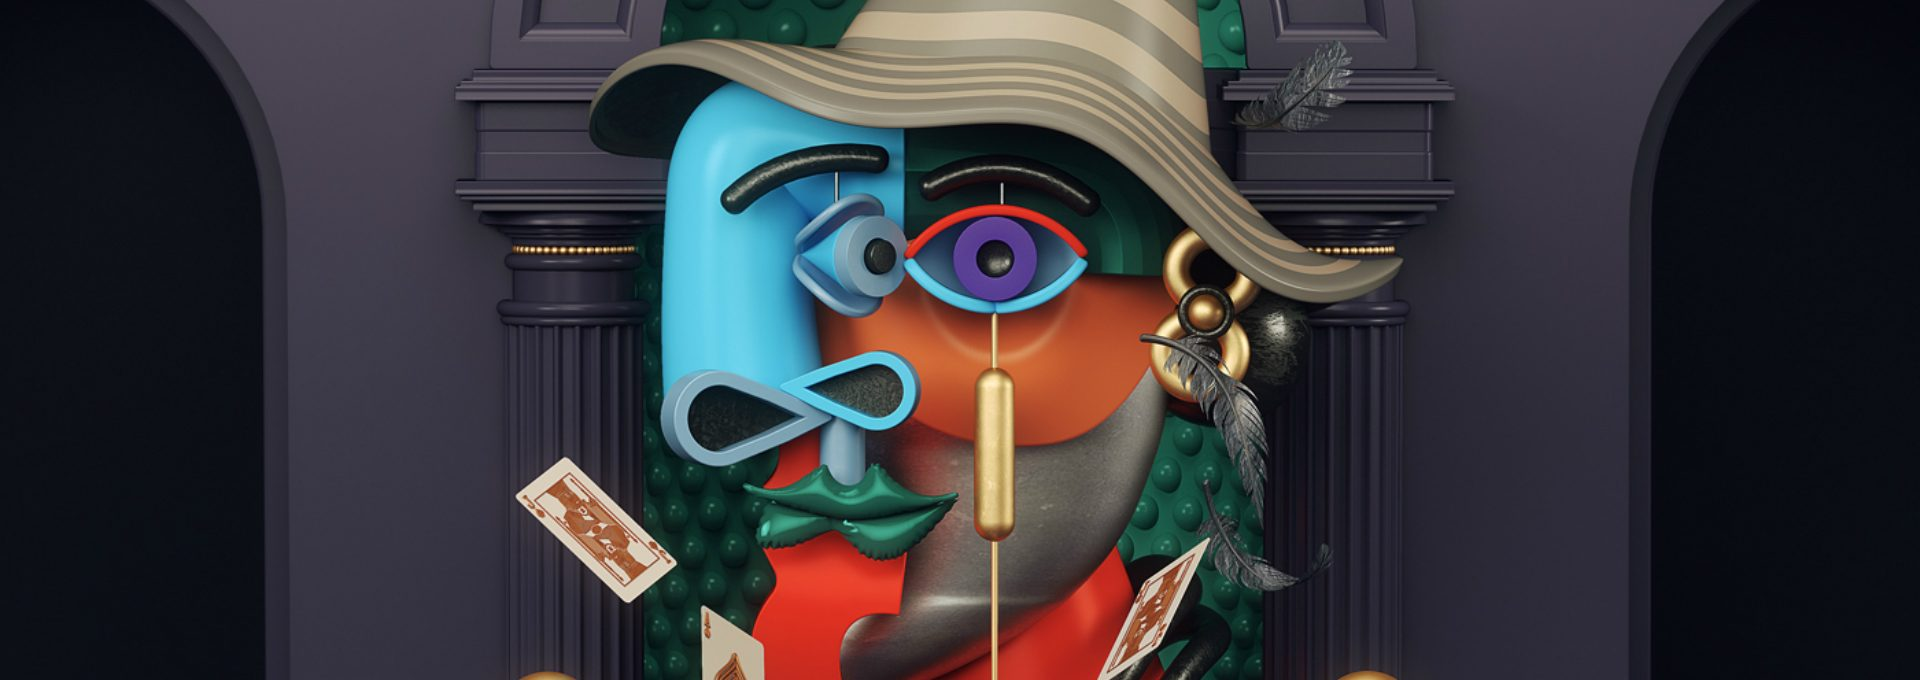 Picasso's Abstract Paintings in 3D Illustrations by Omar Aqil - Daily Design News - Contemporary Art ➤ Discover the season's newest design news and inspiration ideas. Visit Daily Design News and subscribe our newsletter! #dailydesignnews #designnews #ContemporaryArt #OmarAqil #Picasso